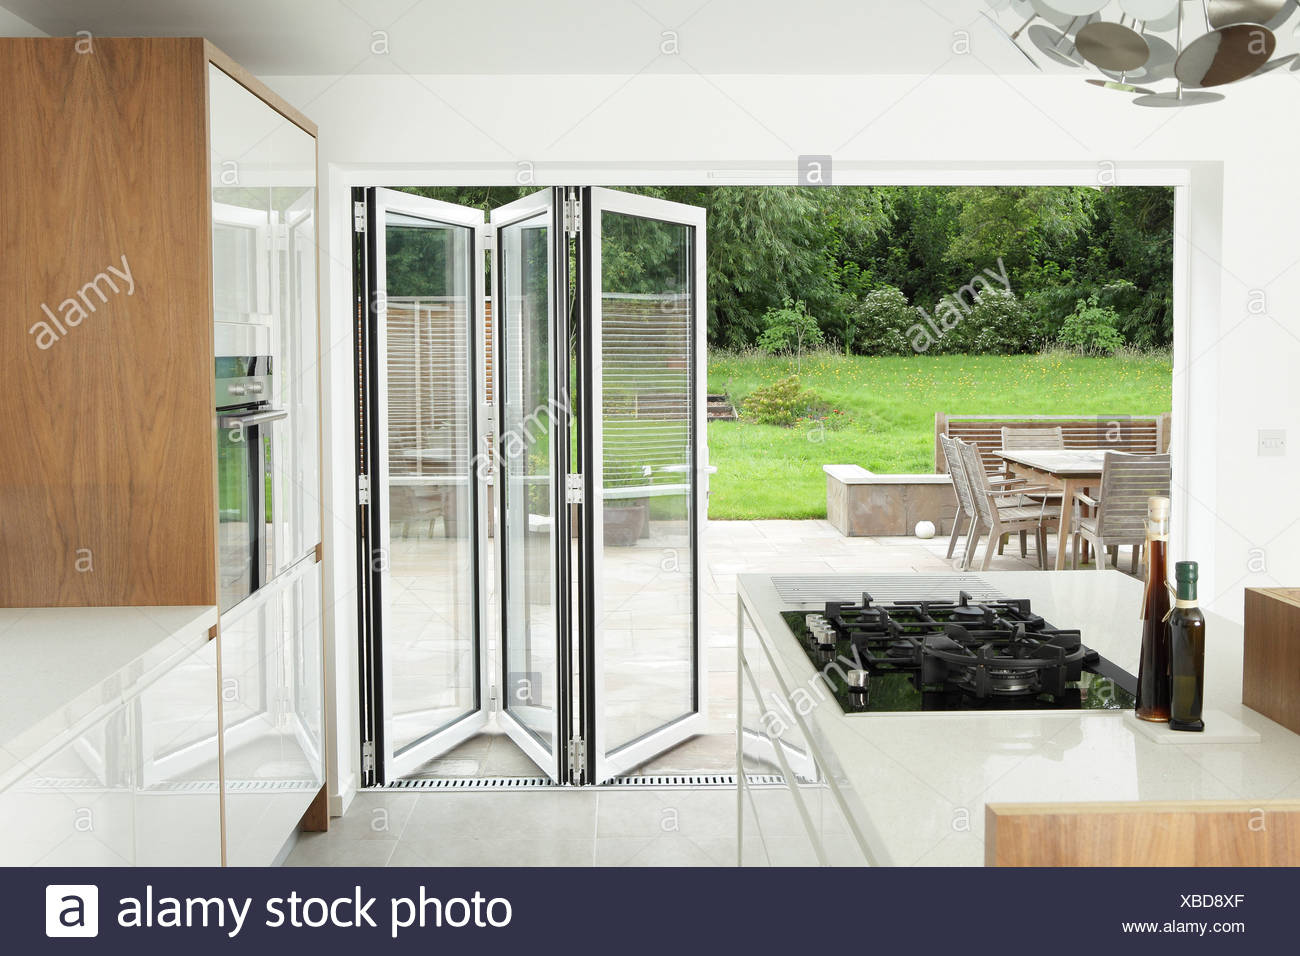 Kitchen With Open Patio Doors Stock Photo 282419495 Alamy